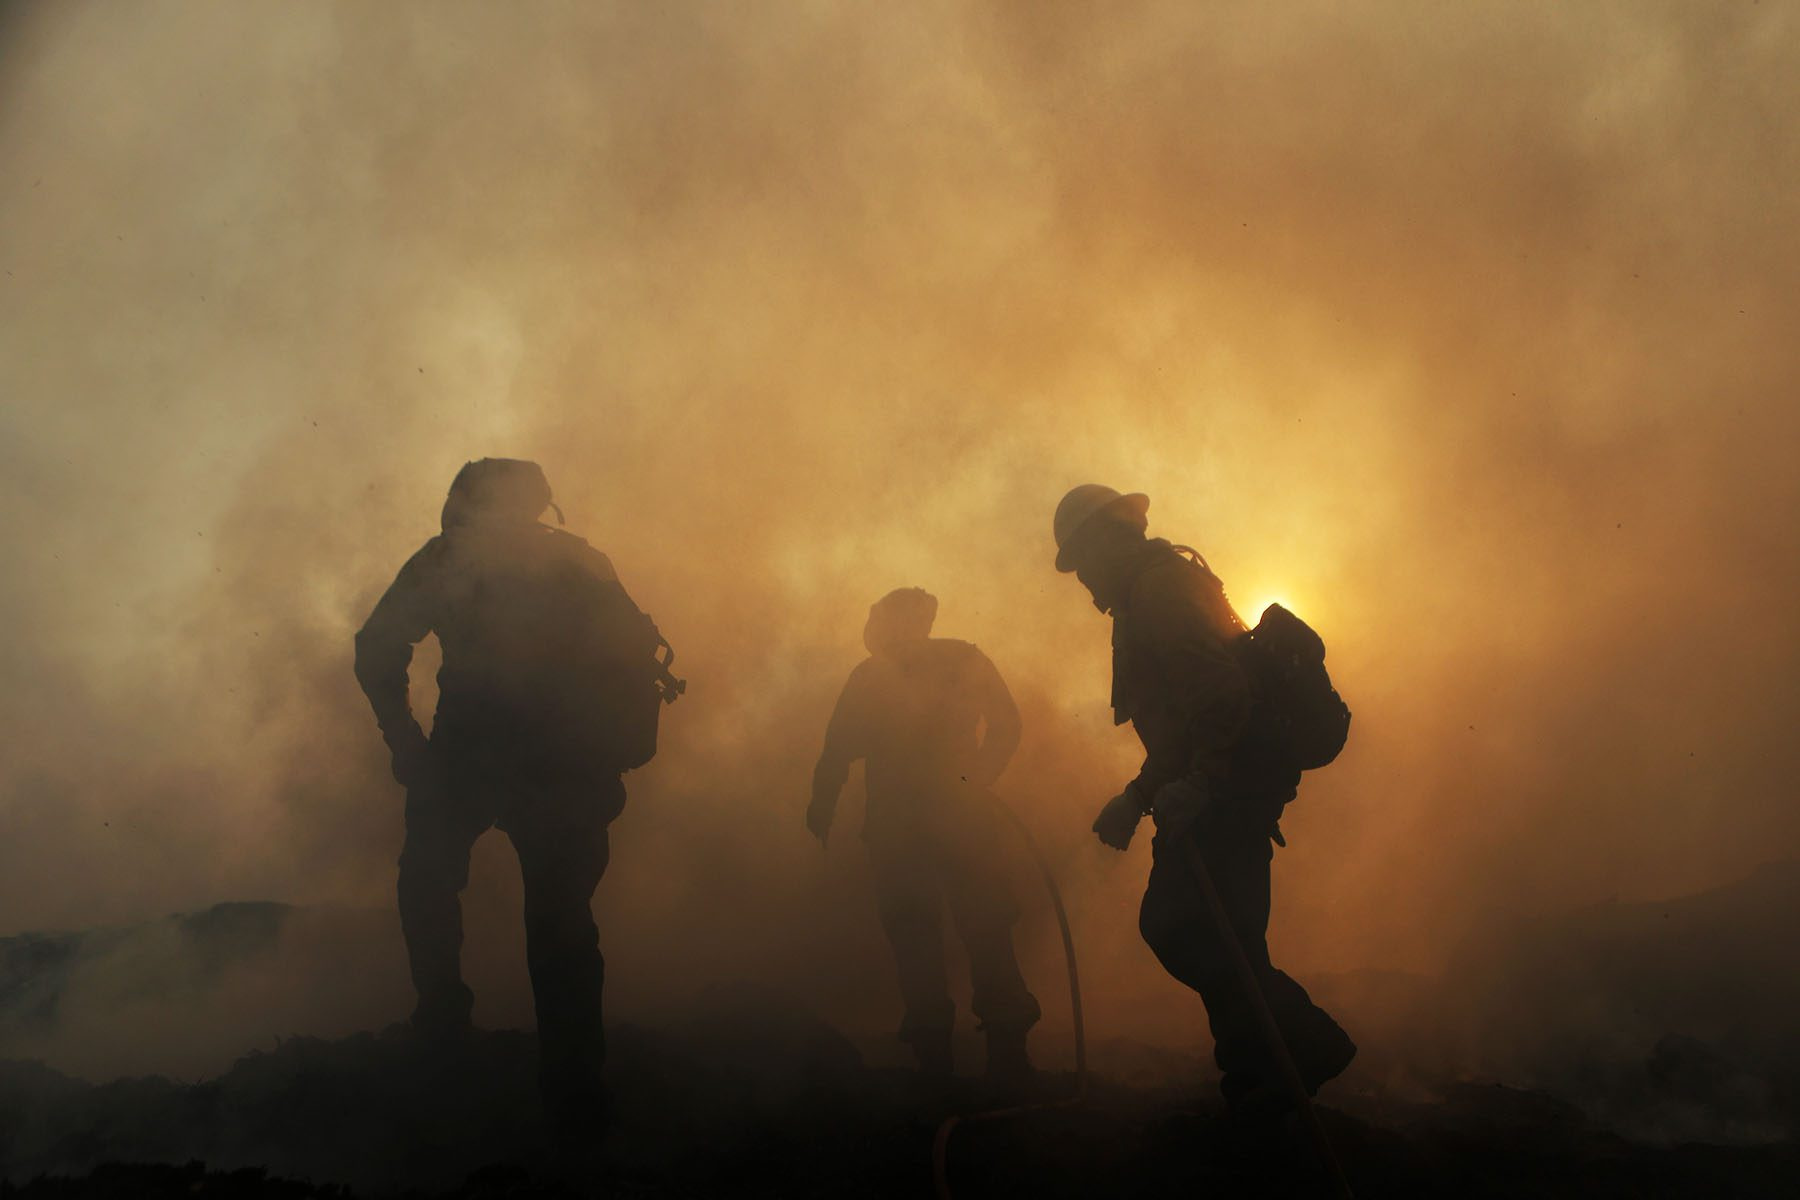 Three firefighters are seen enveloped in thick plumes of smoke.